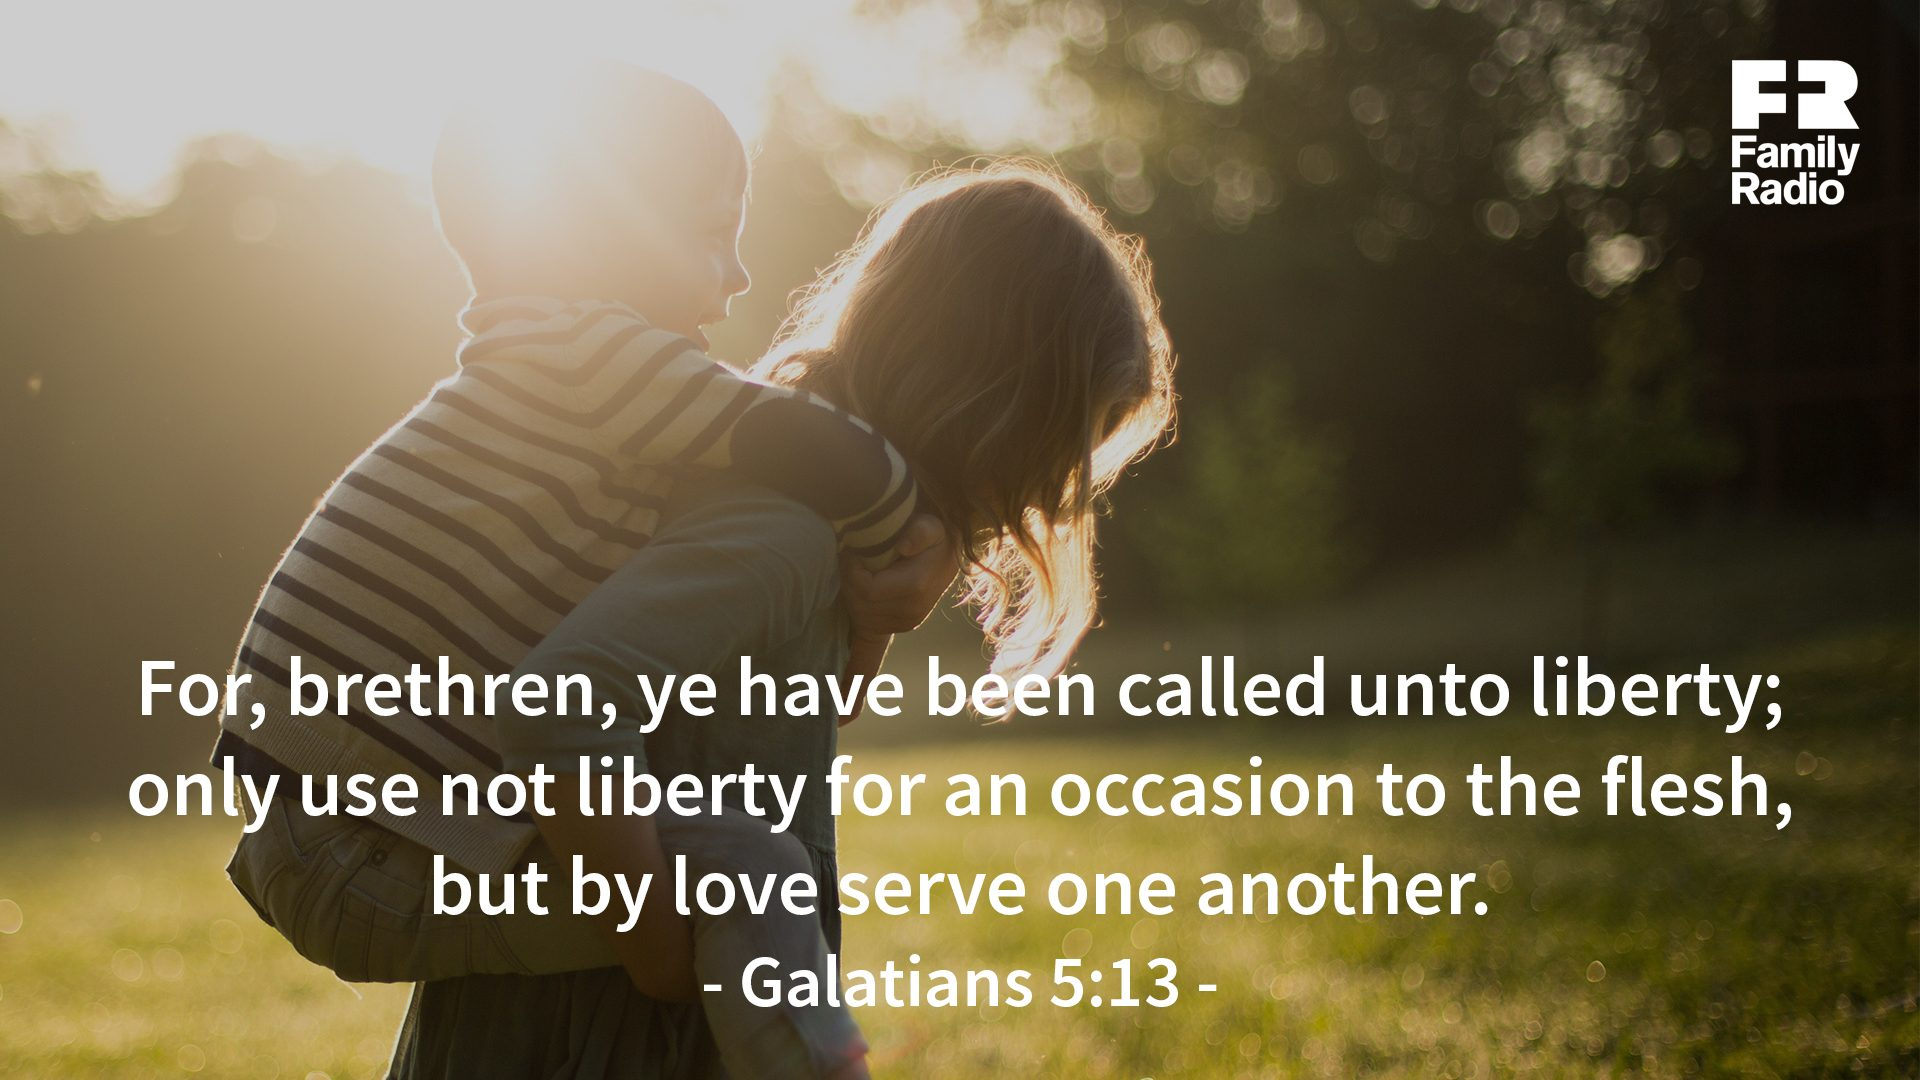 """For, brethren, ye have been called unto liberty; only use not liberty for an occasion to the flesh, but by love serve one another."""